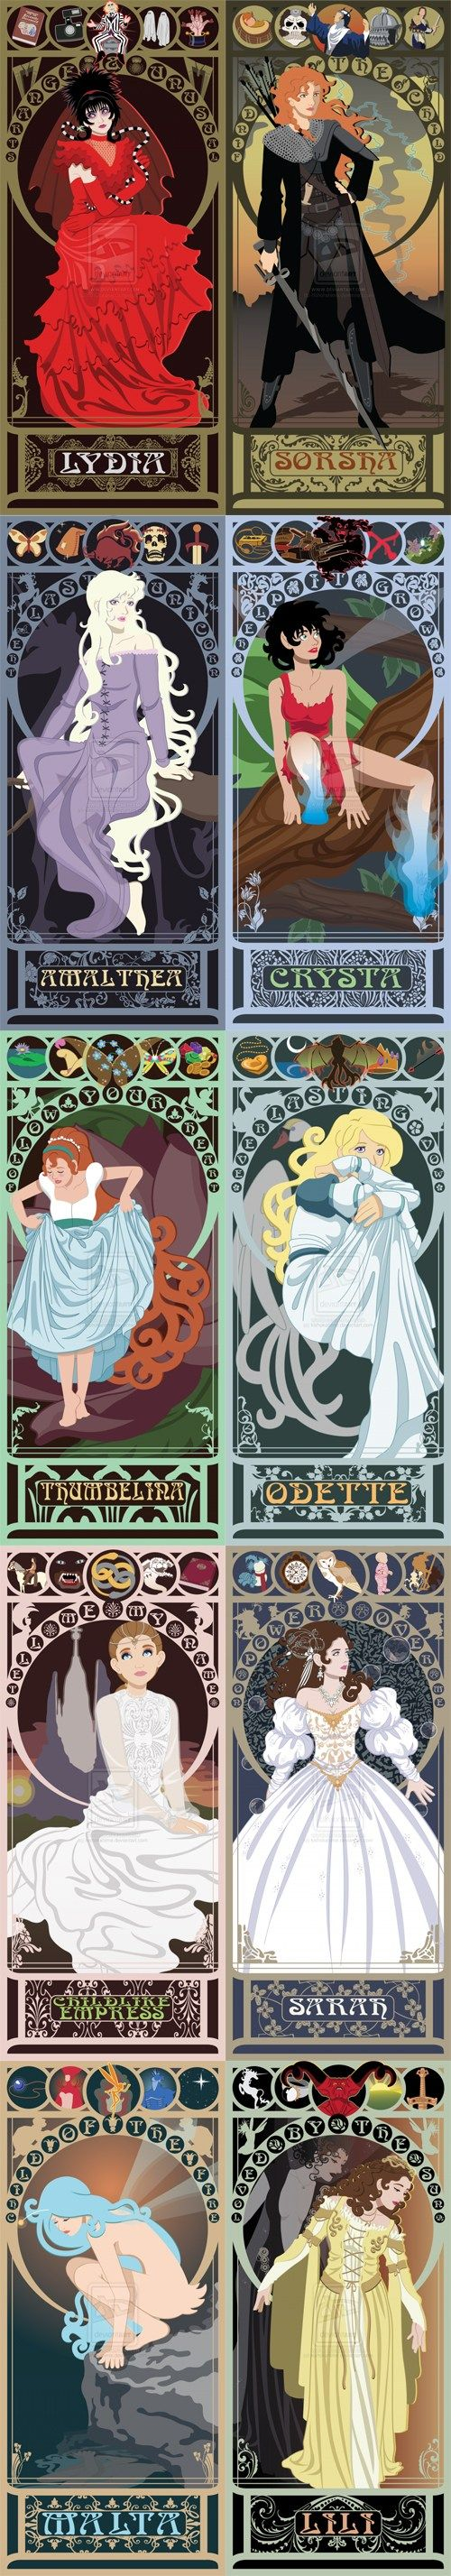 Fantasy heroines from the '80s and '90s  I love this!